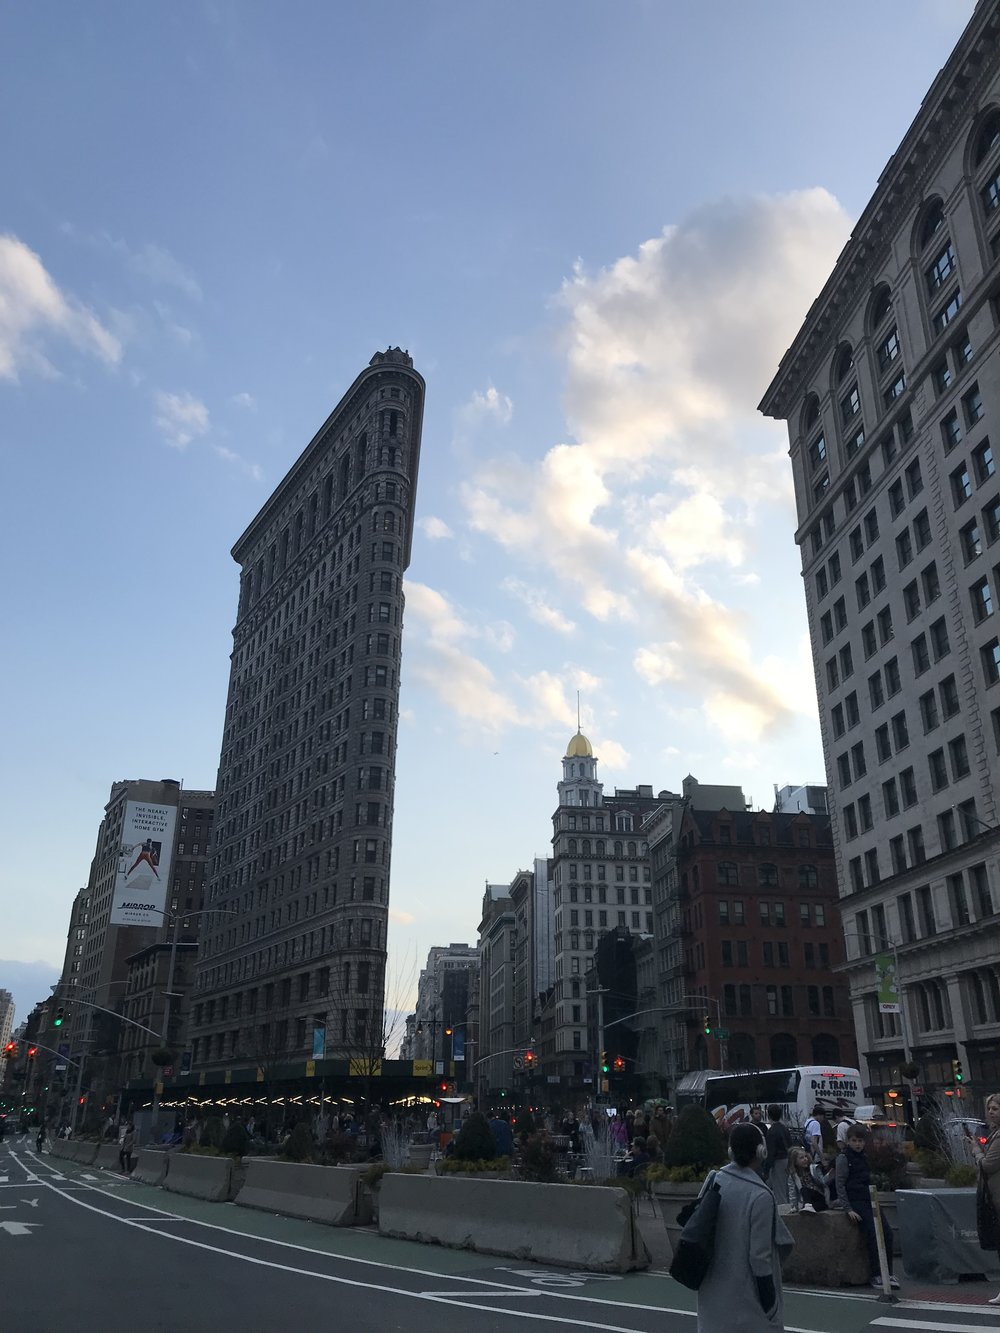 An image of the flatiron building in the evening.